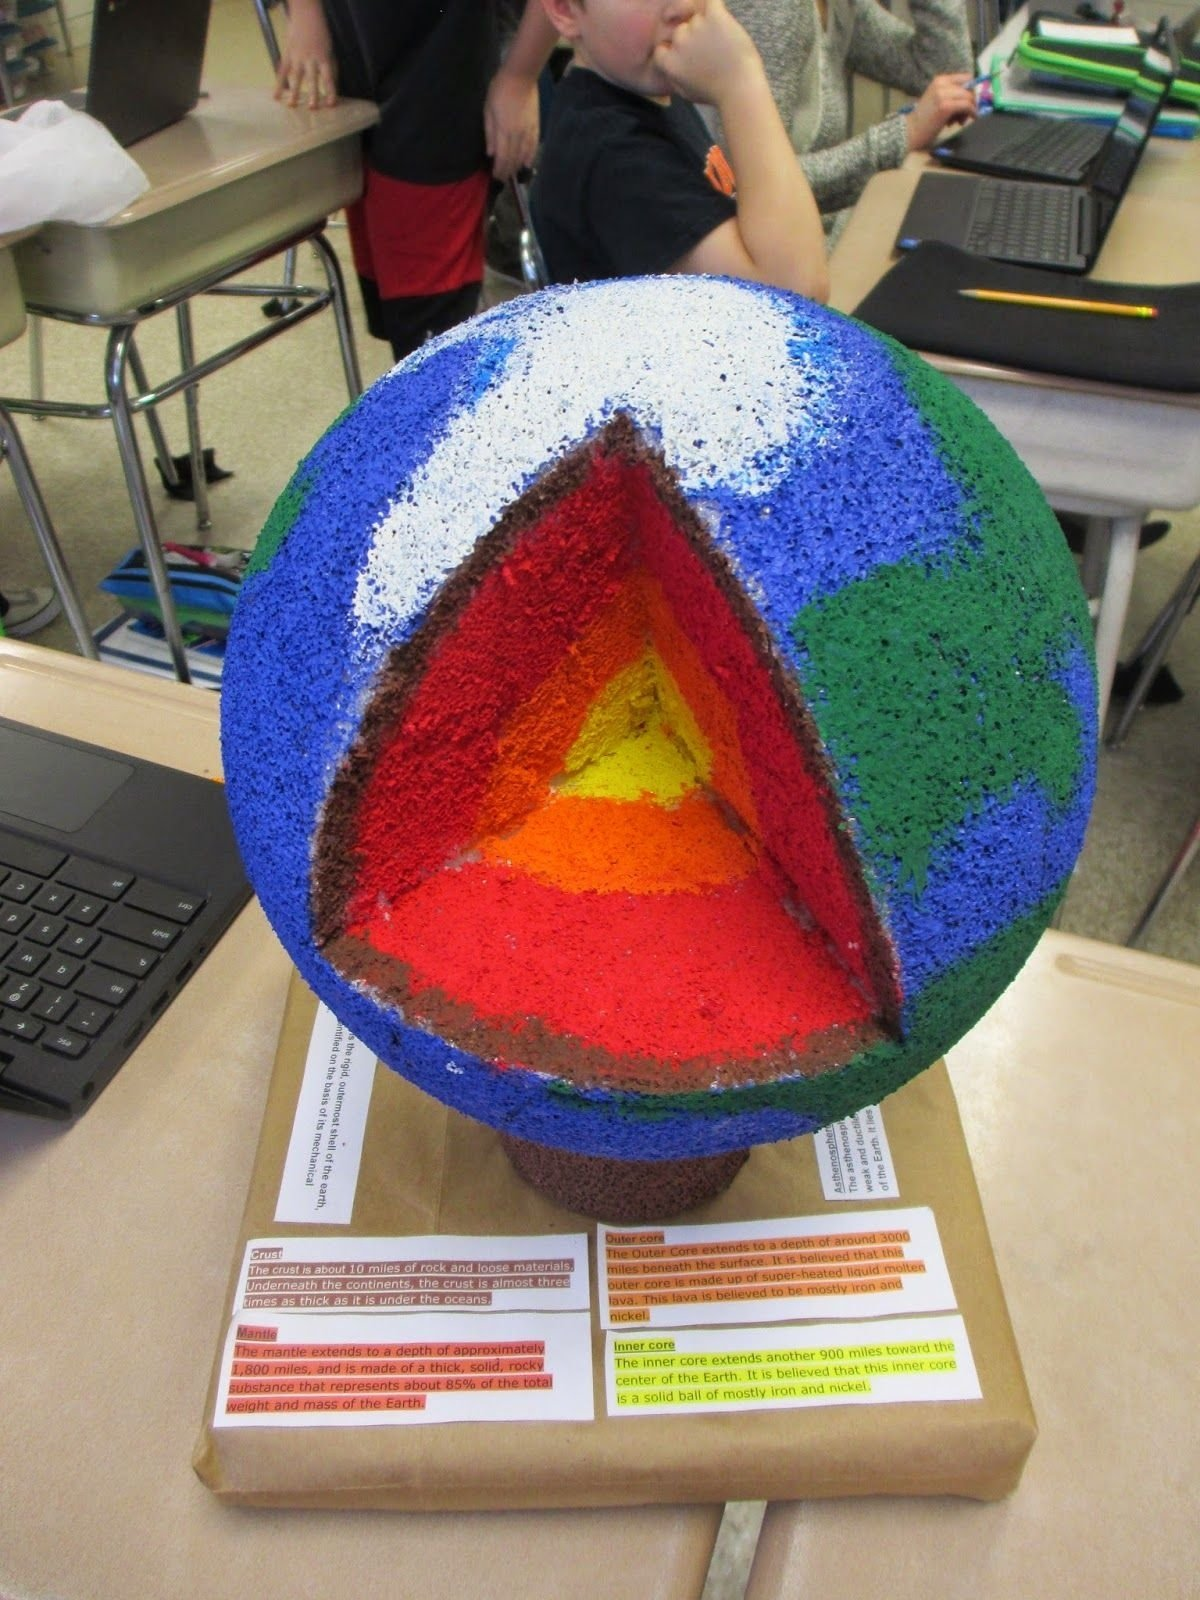 10 Famous Layers Of The Earth Project Ideas fabulous in fifth scientific saturdays layers of earth projects